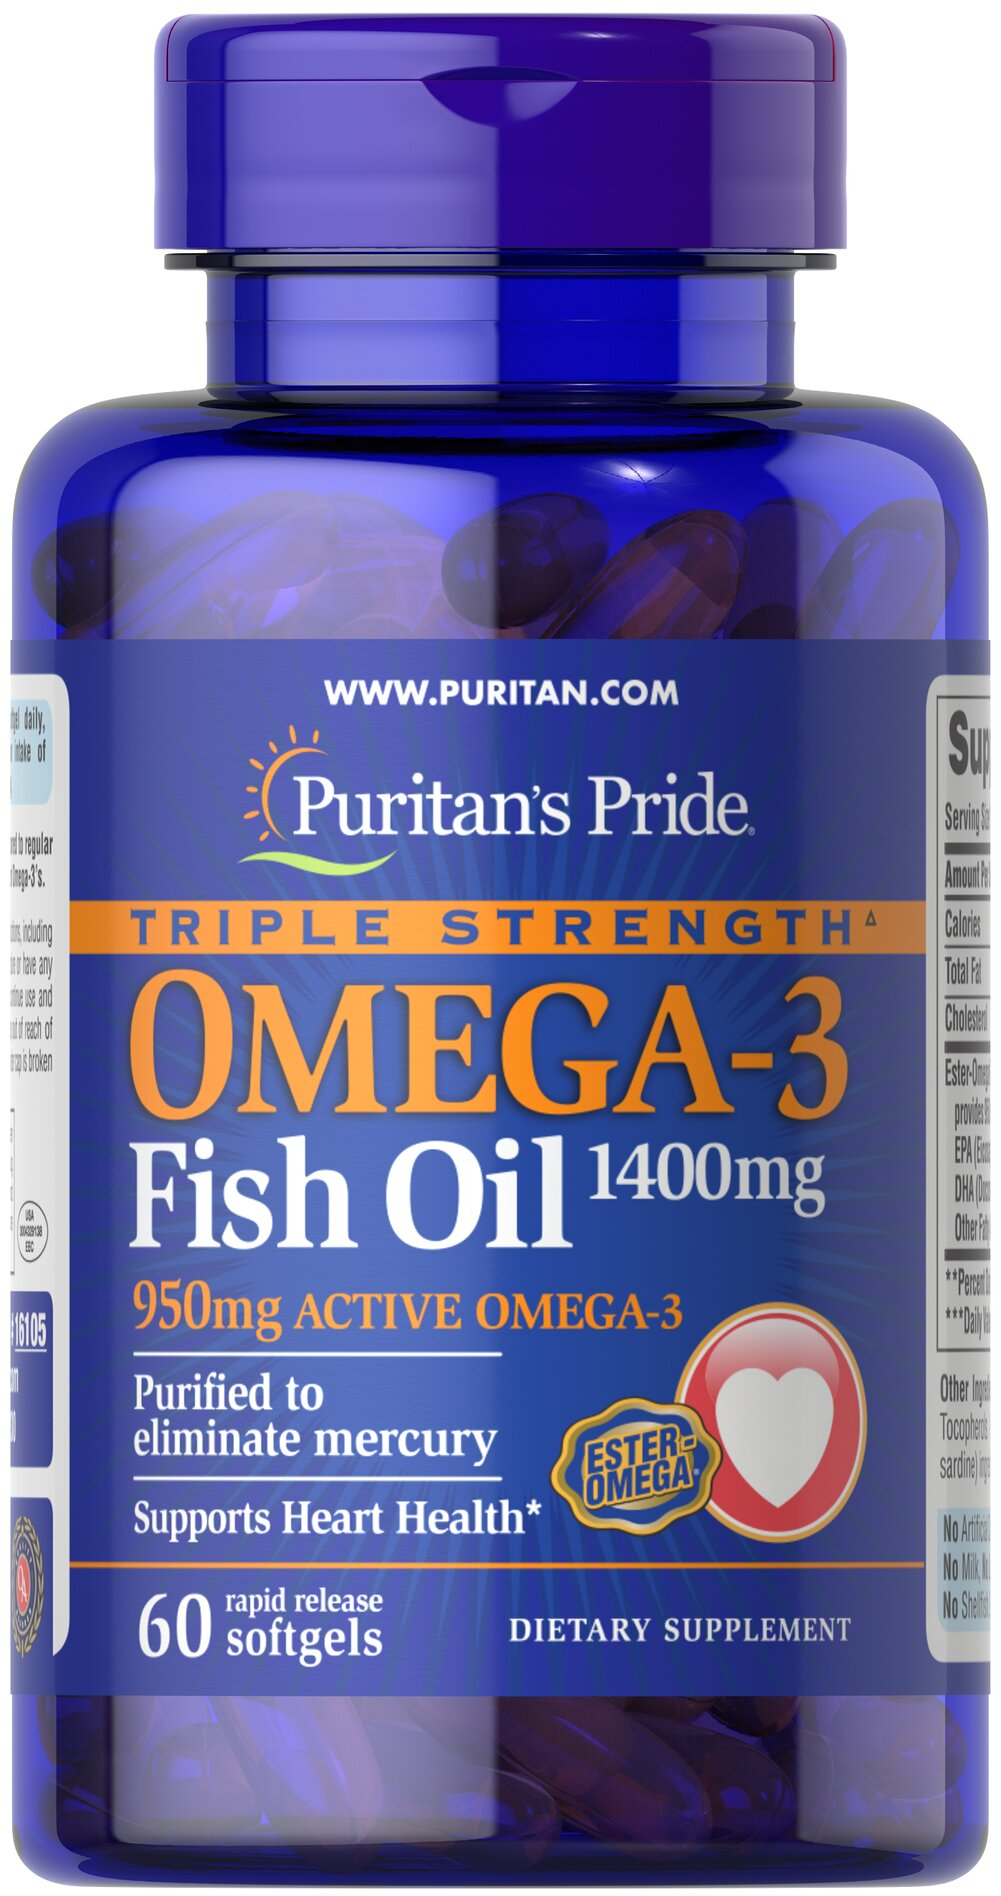 Triple Strength Omega-3 Fish Oil 1360 mg (950 mg Active Omega-3)  60 Softgels 1360 mg $21.99